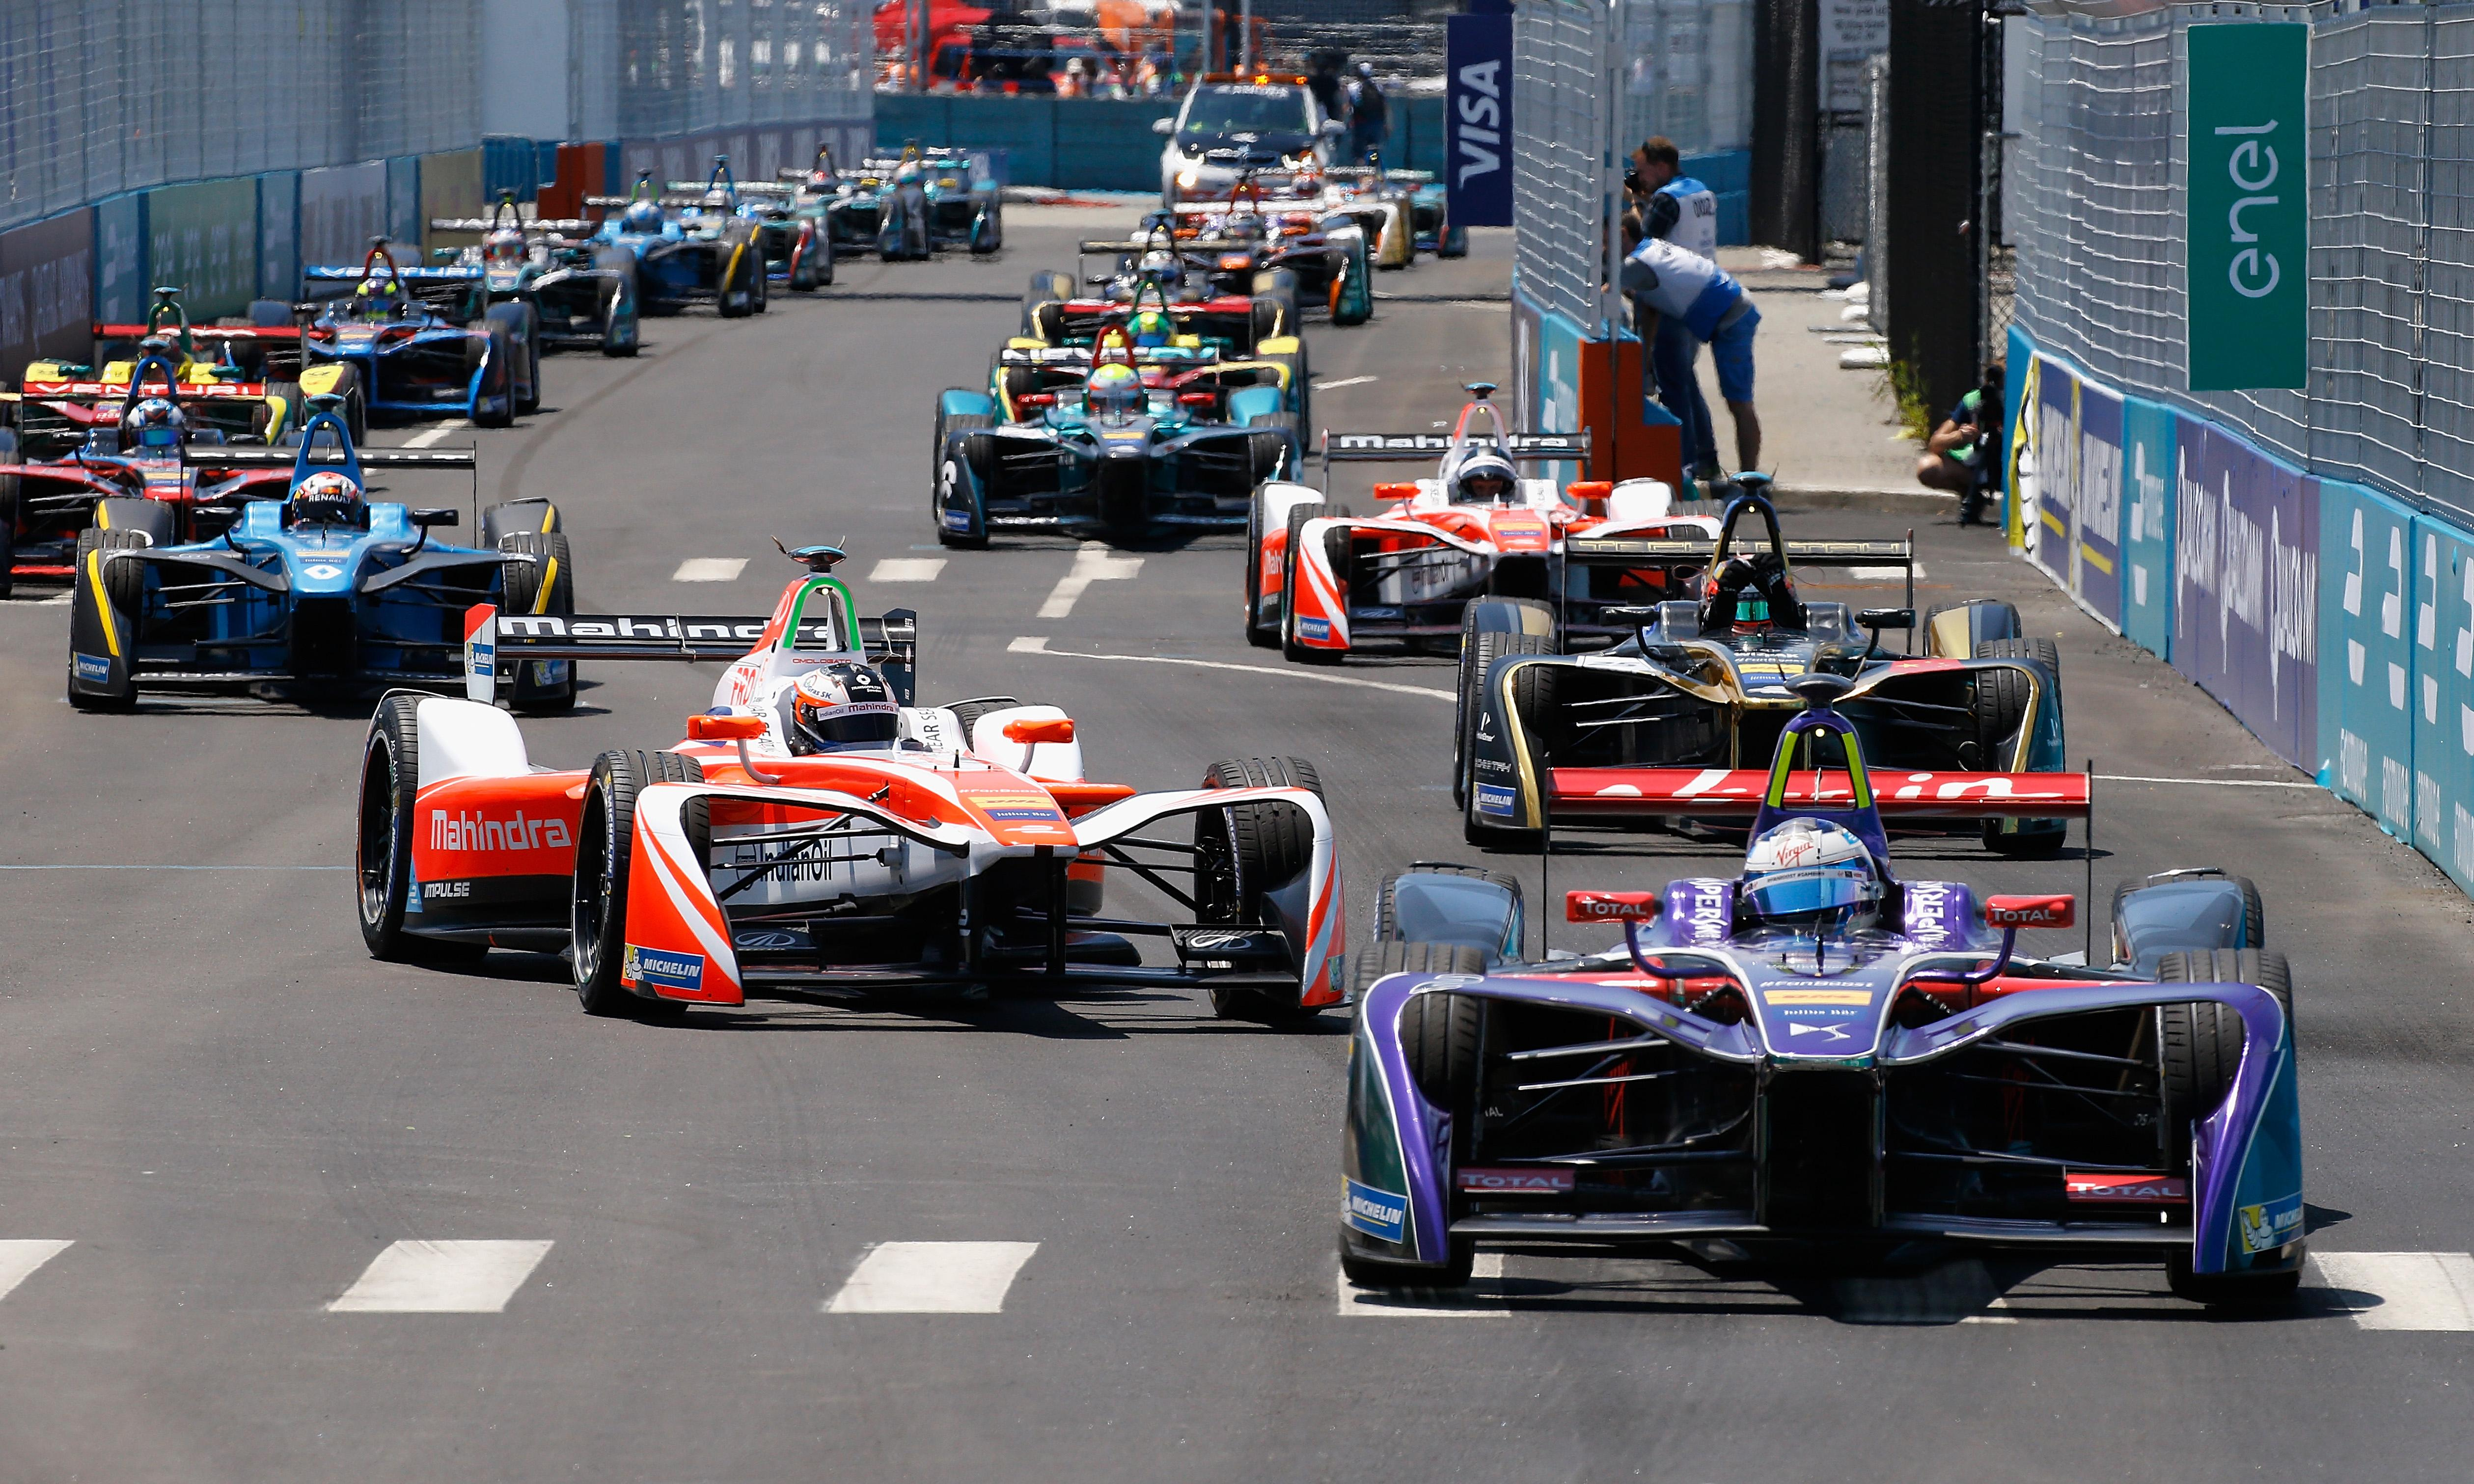 As German giants join Formula E, is the future electric for motor racing?